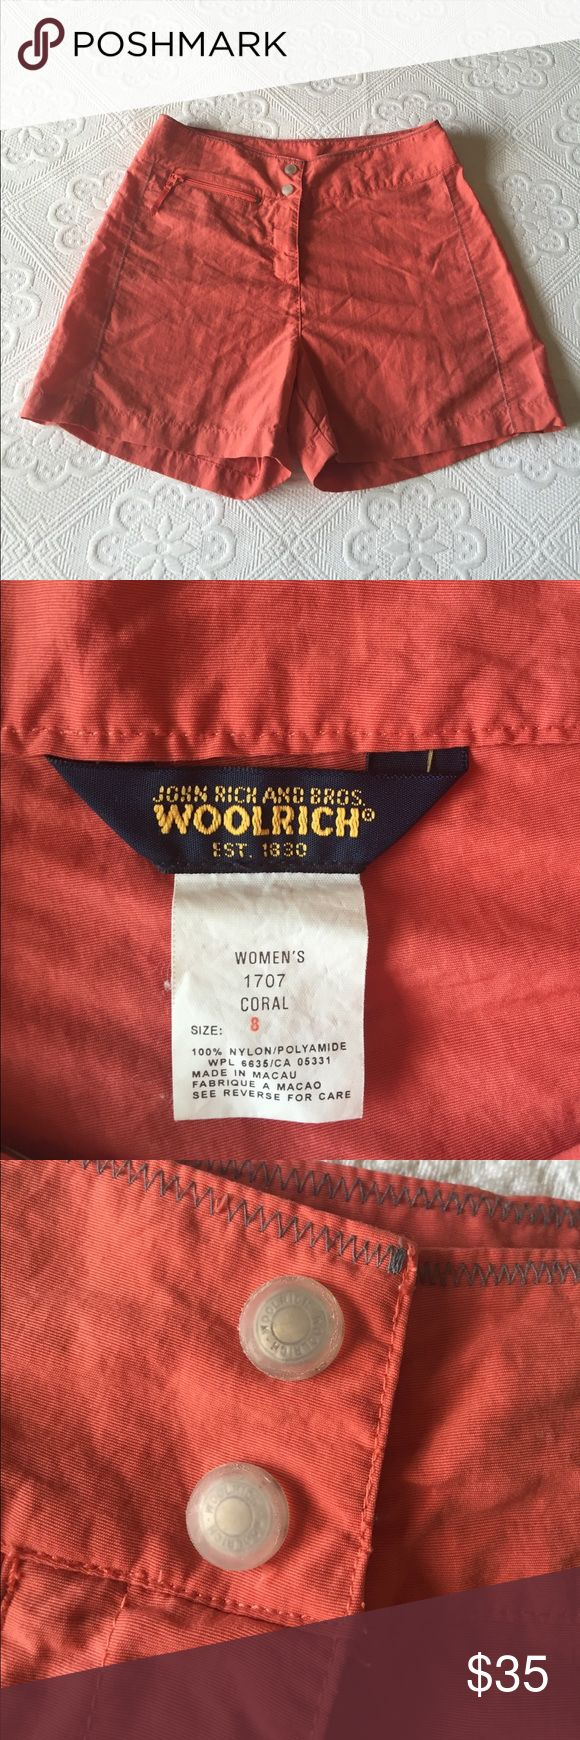 Woolrich - Coral Shorts Woolrich - Coral Shorts / Has a two snaps and a velcro fly for closure.  On the front there is a zippered pocket, deep enough to hold an iPhone 6.  Great for hiking, water sports, amusement parks, etc.  Beautiful coral color. Woolrich Shorts